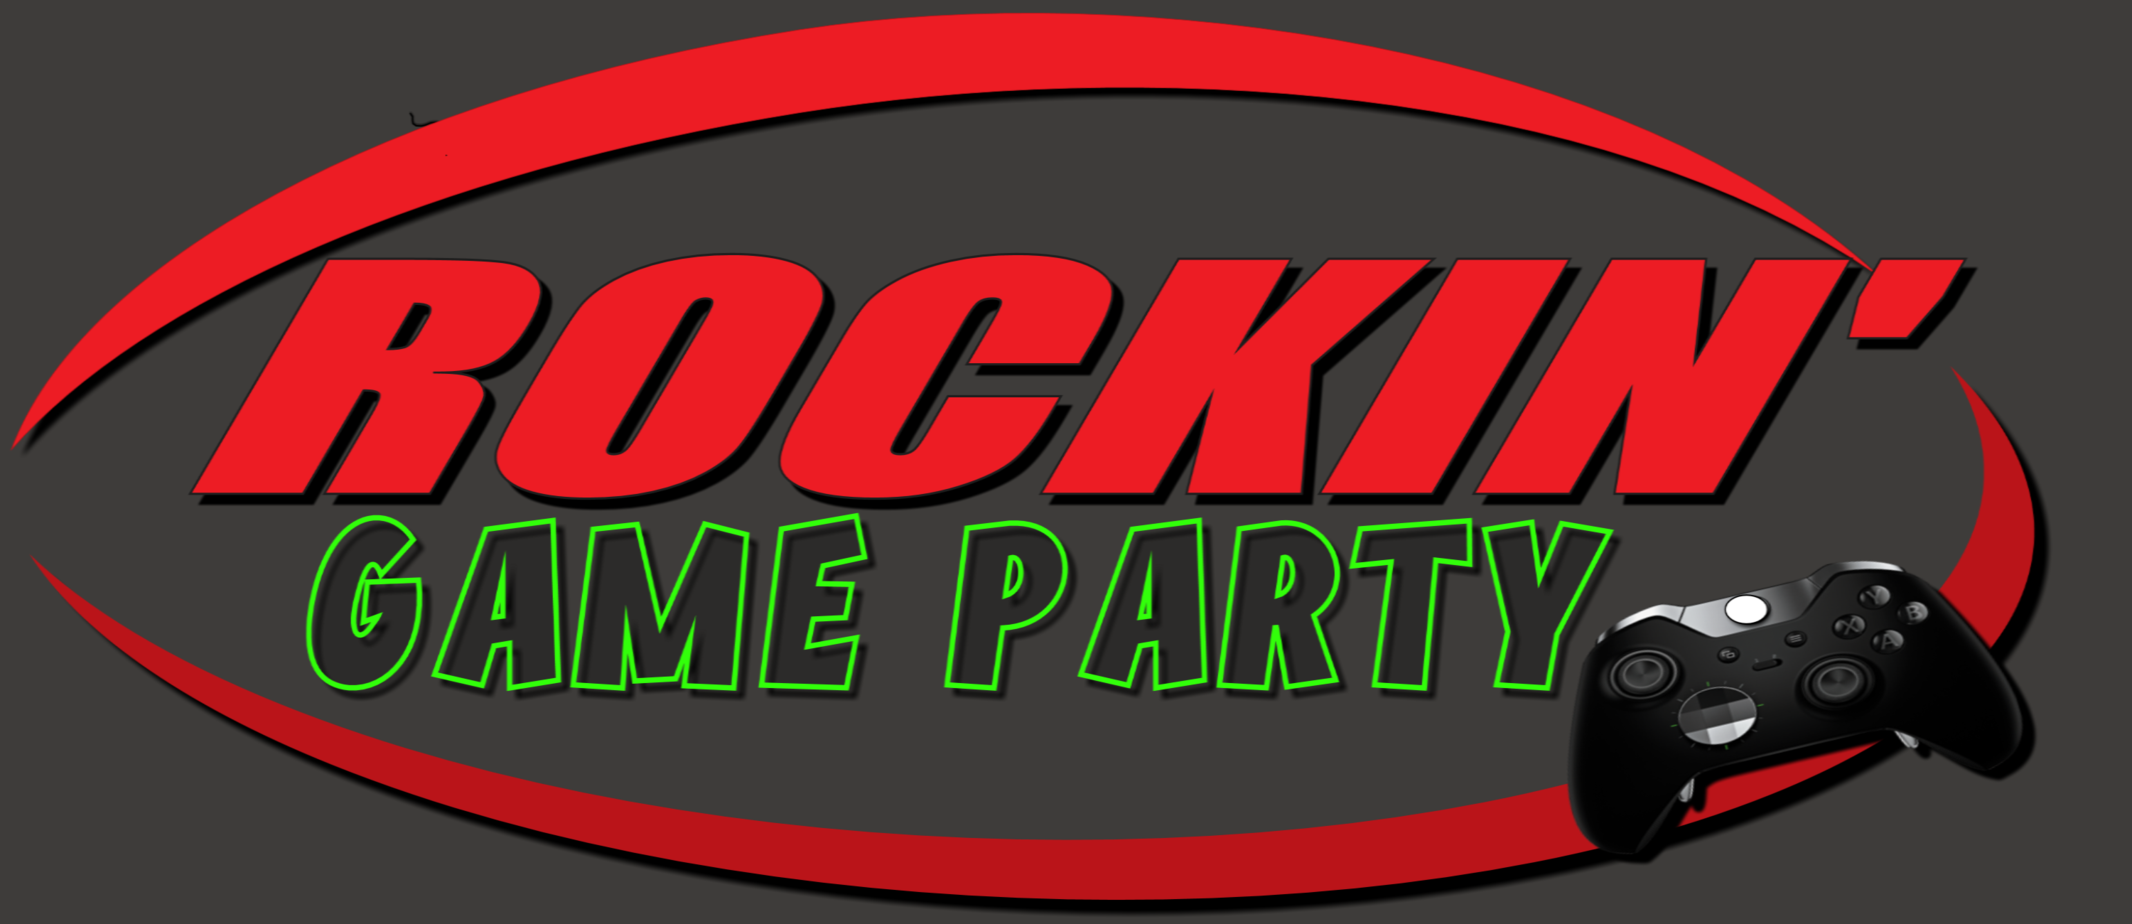 http://www.drsdesignco.com/wp-content/uploads/2016/06/ROCKIN-GAME-PARTY-LOGO.png